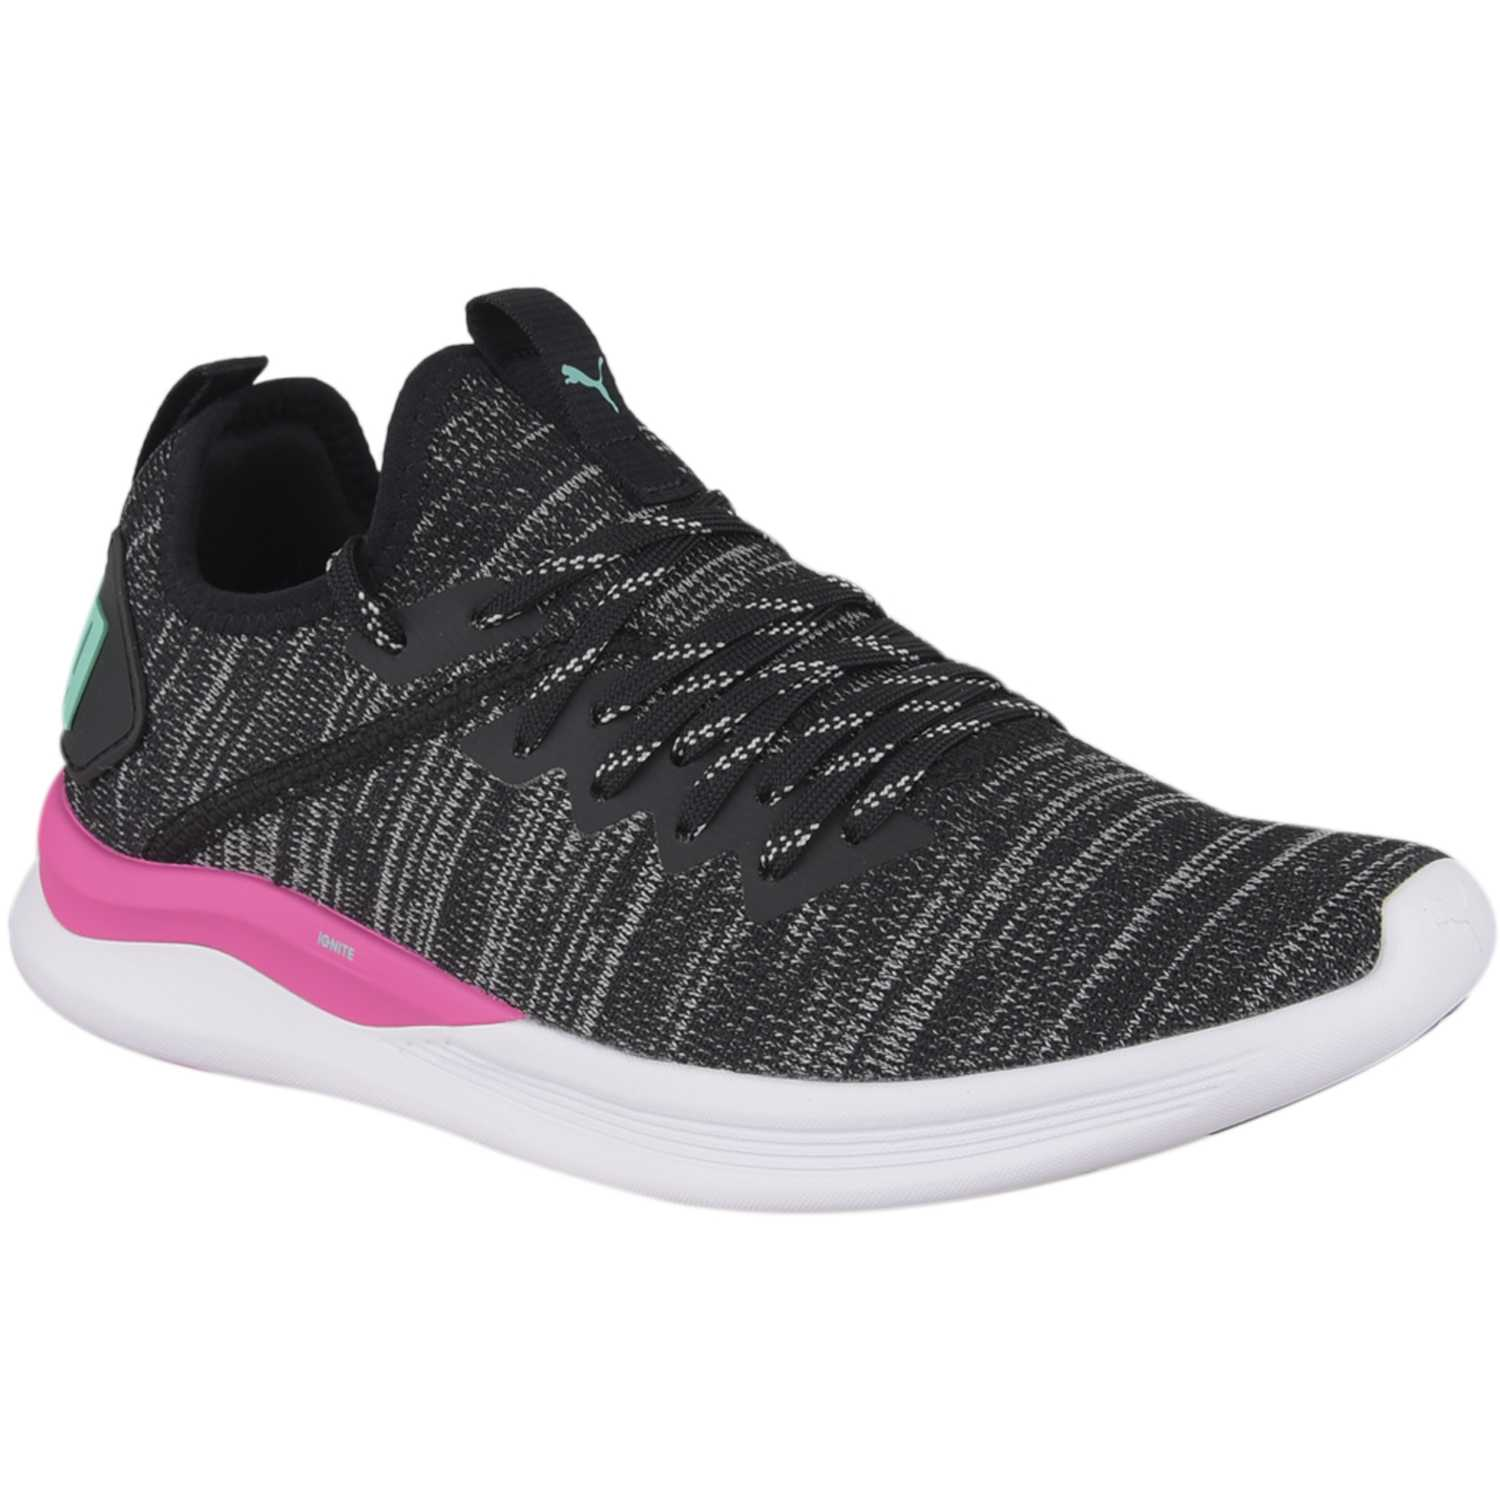 Puma ignite flash evoknit wn's Negro / fucsia Mujeres